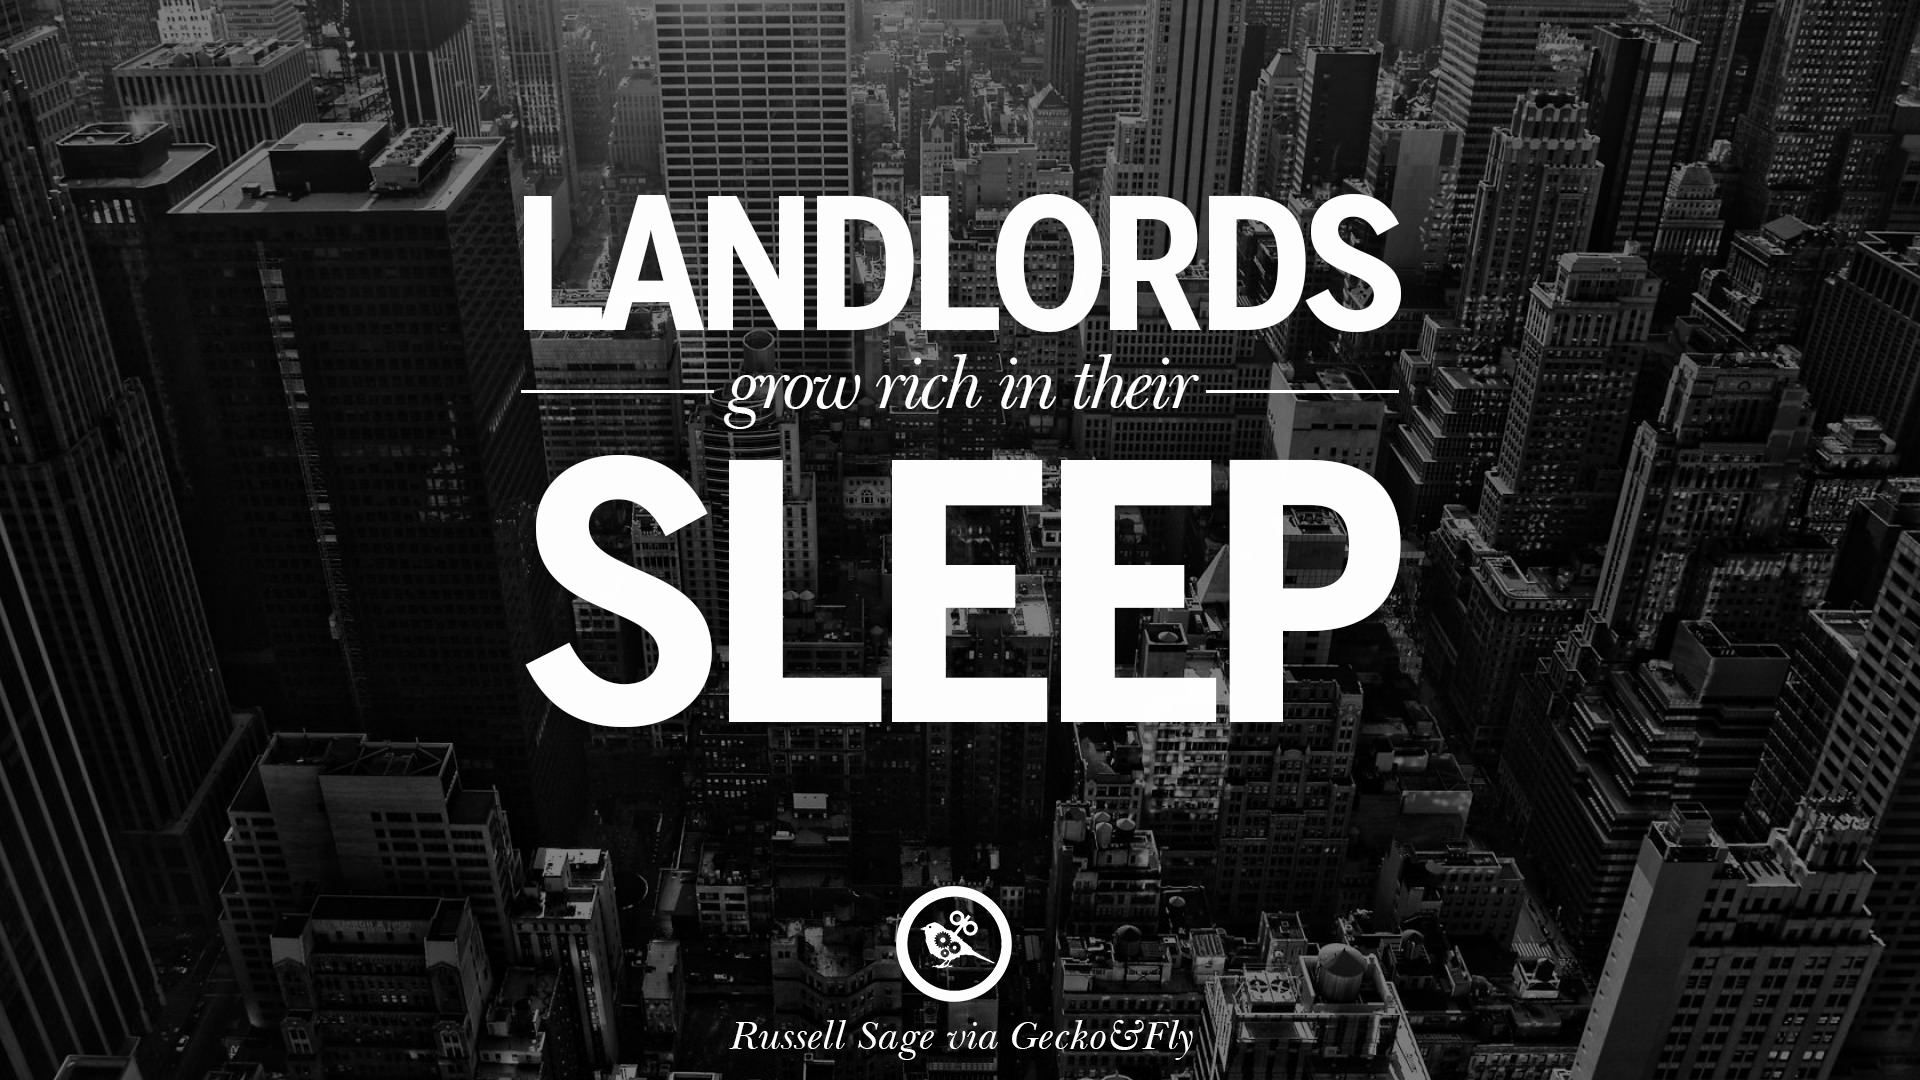 Rich Quotes Wallpaper 10 Quotes On Real Estate Investing And Property Investment